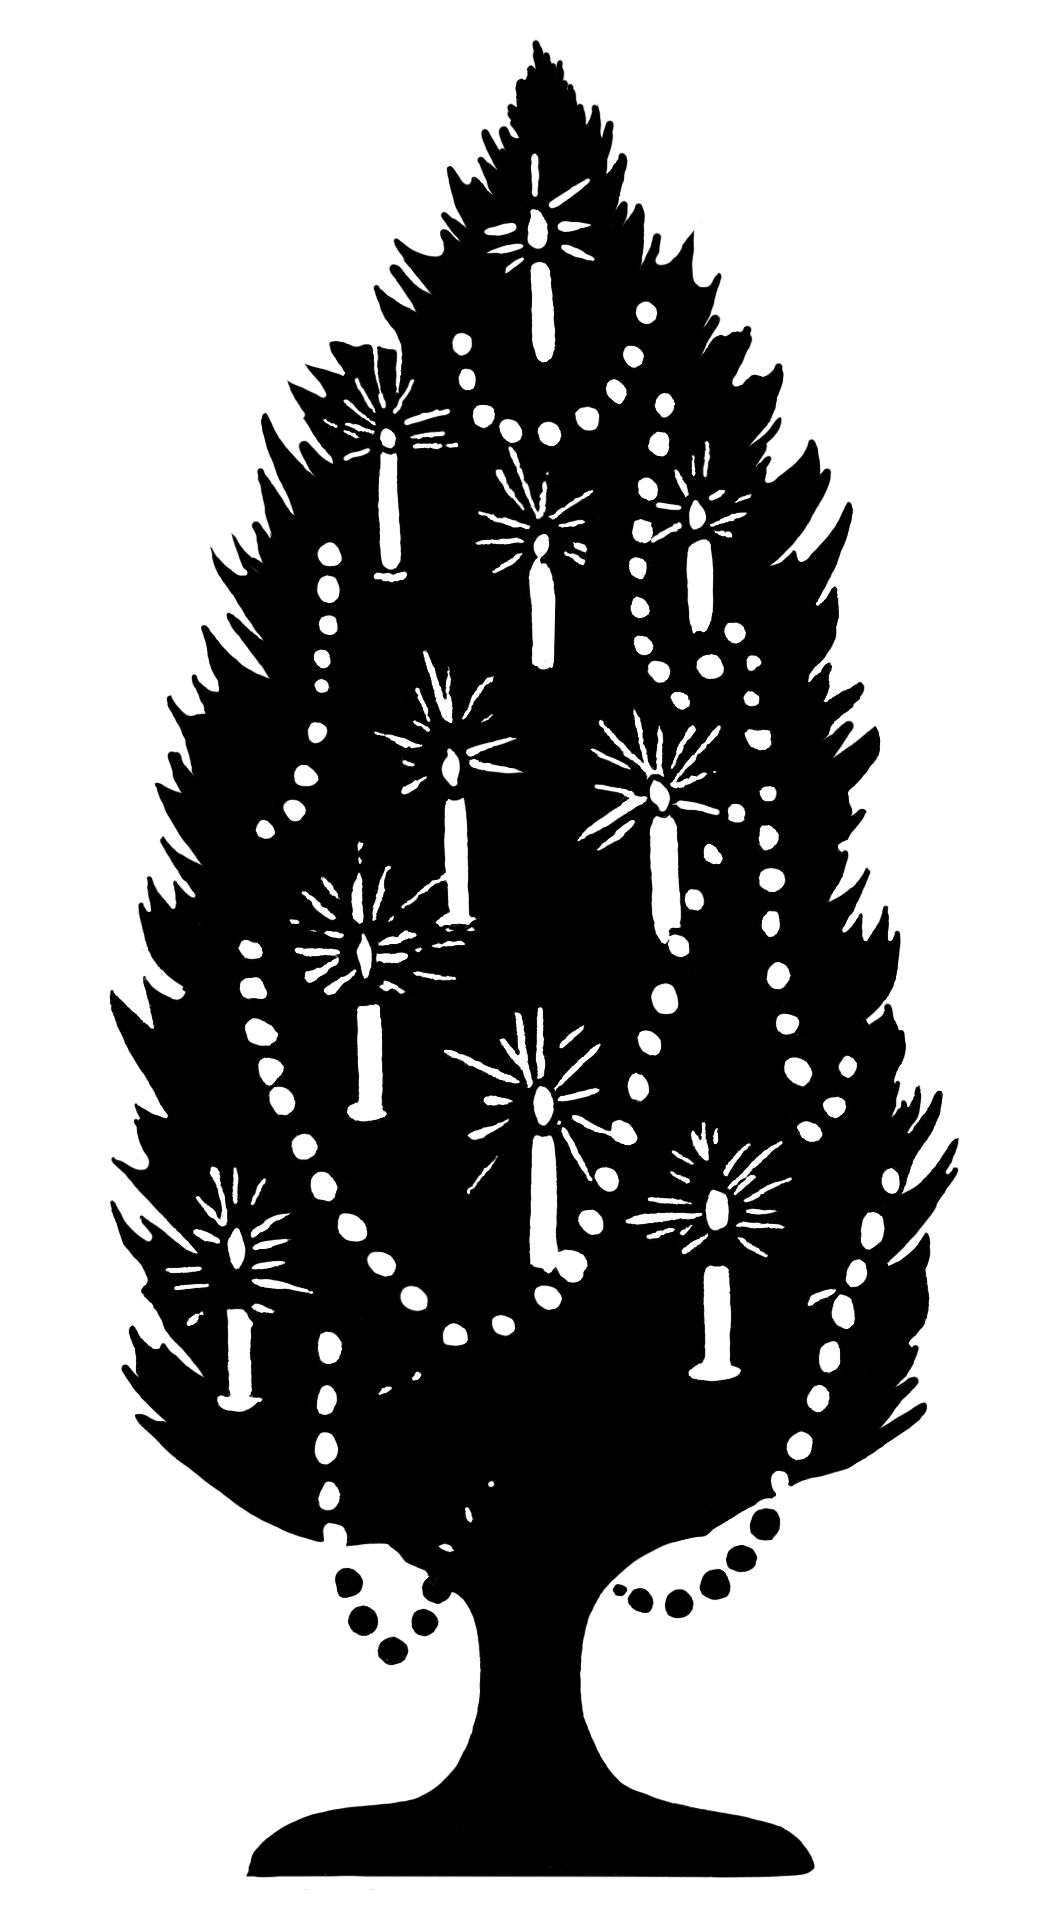 old fashioned Christmas tree, tree decorated with candles